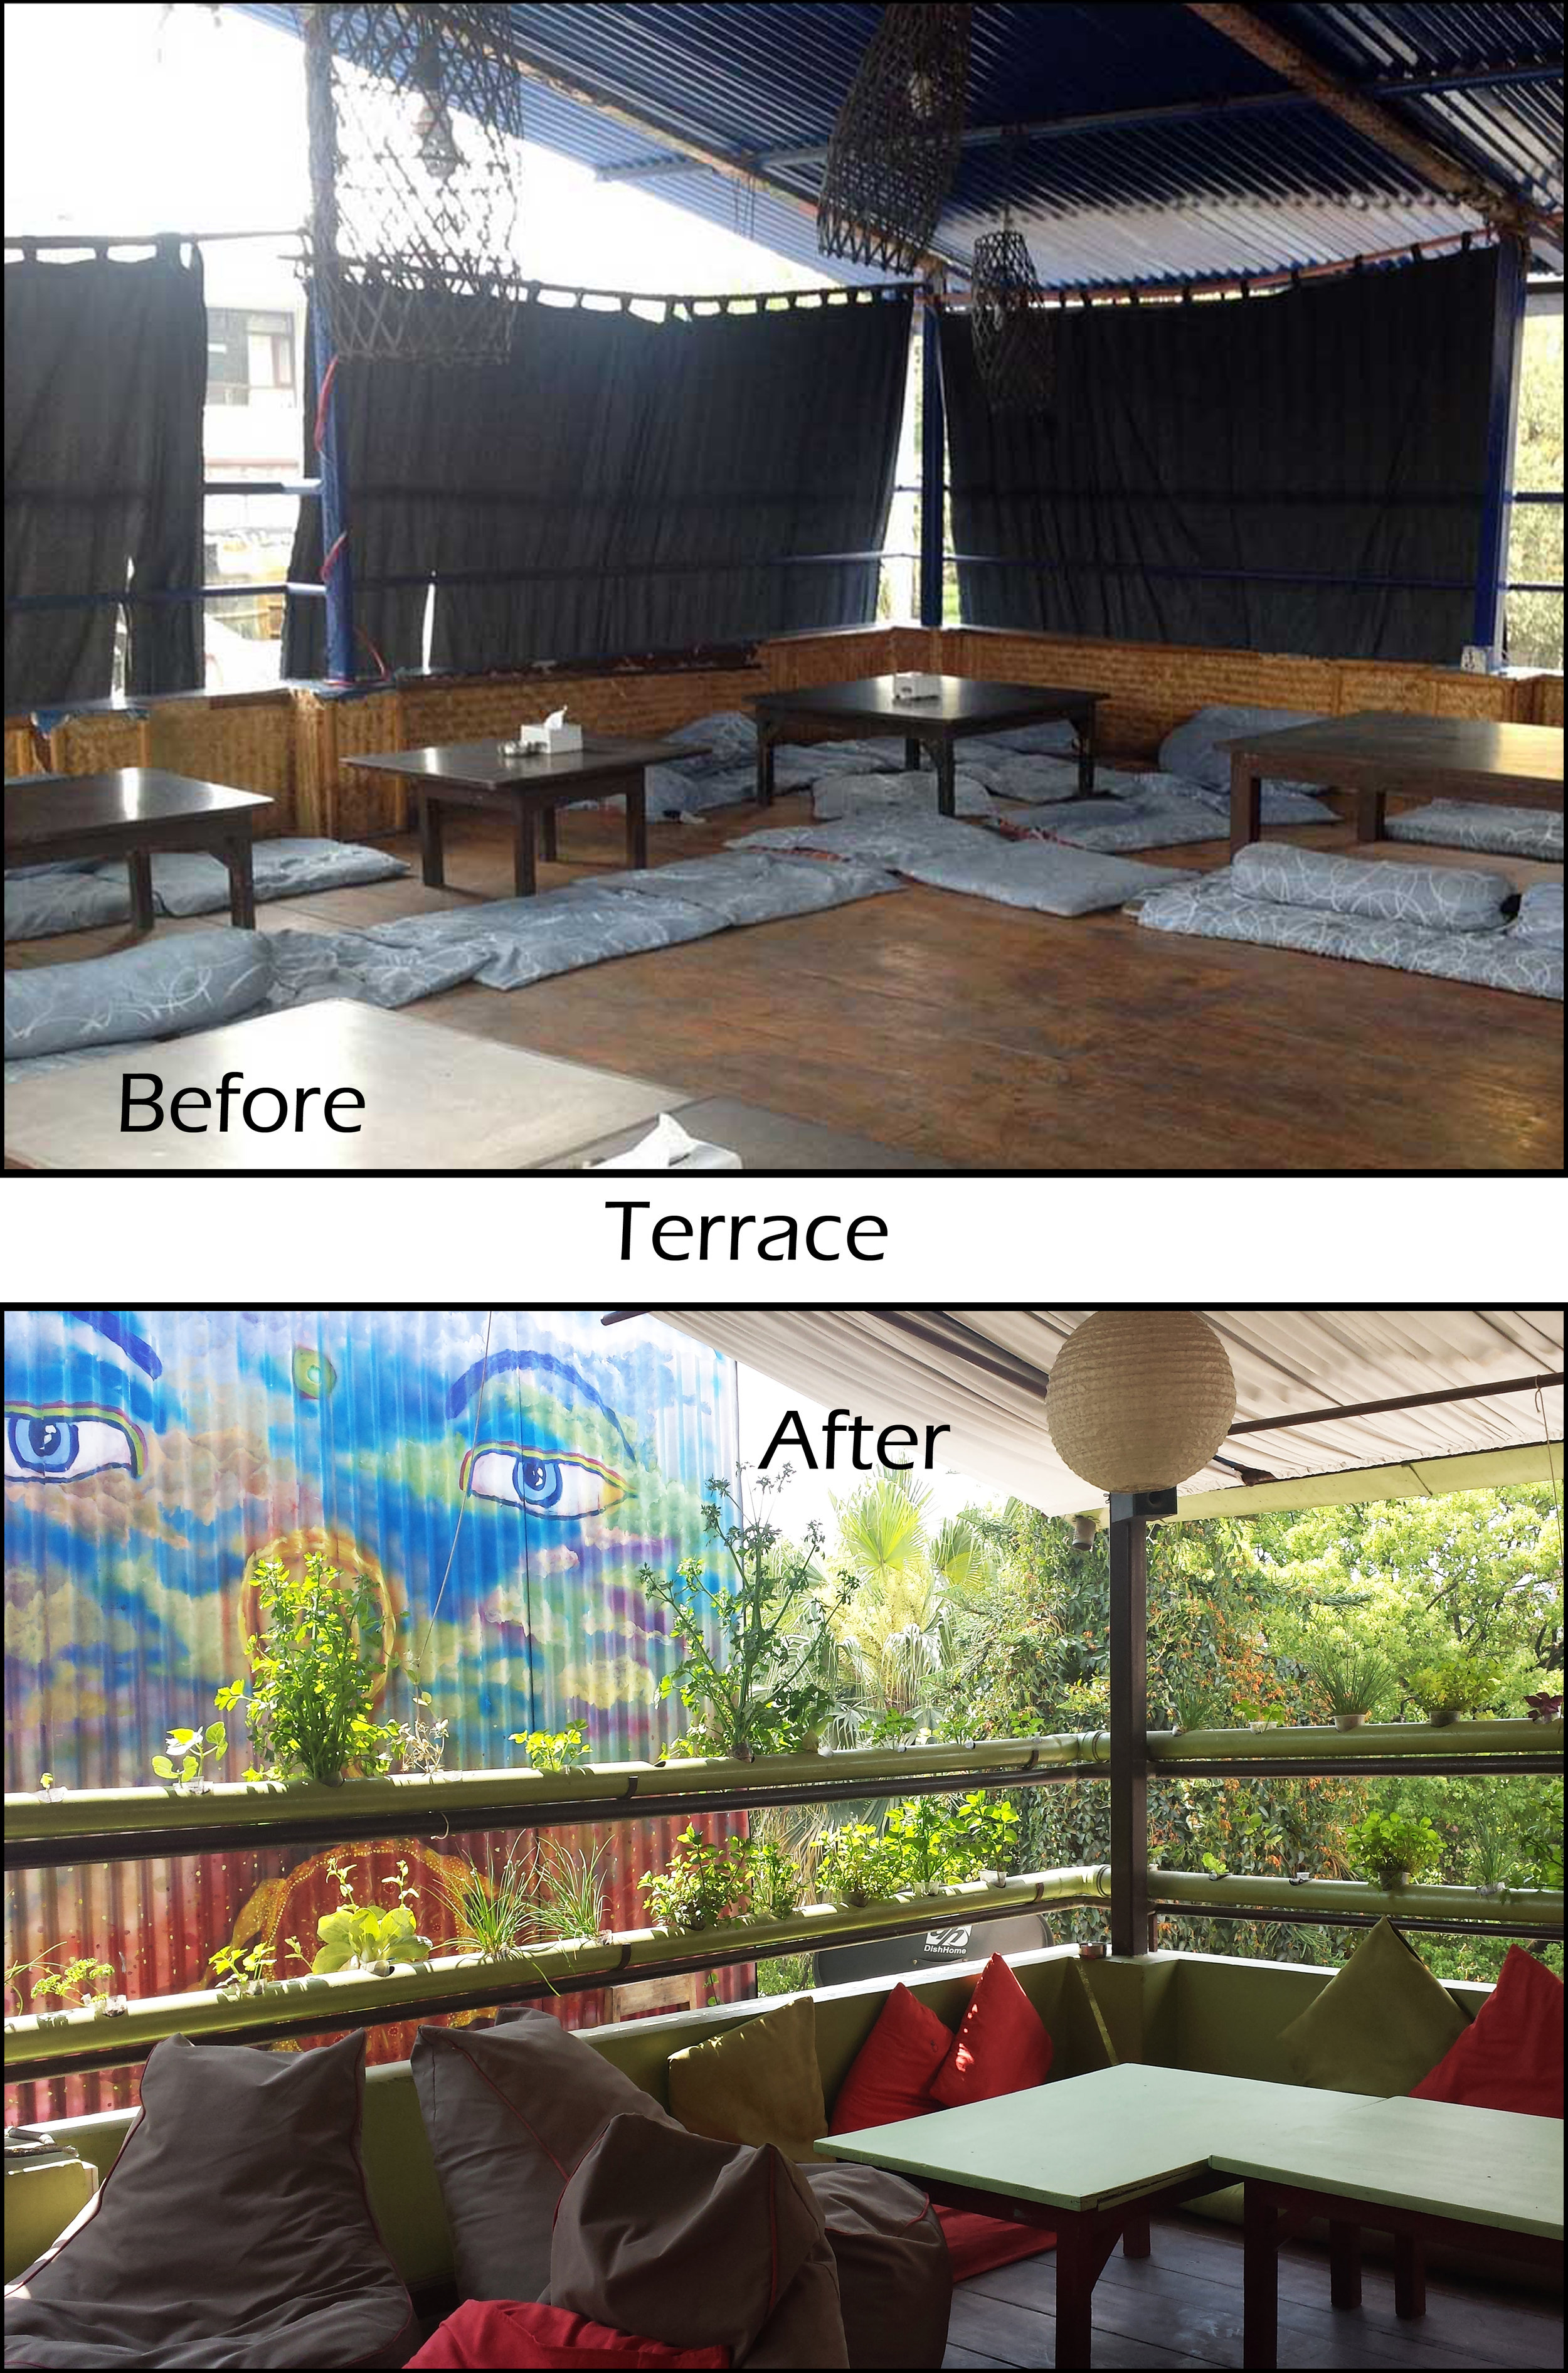 Terrace before and after.jpg